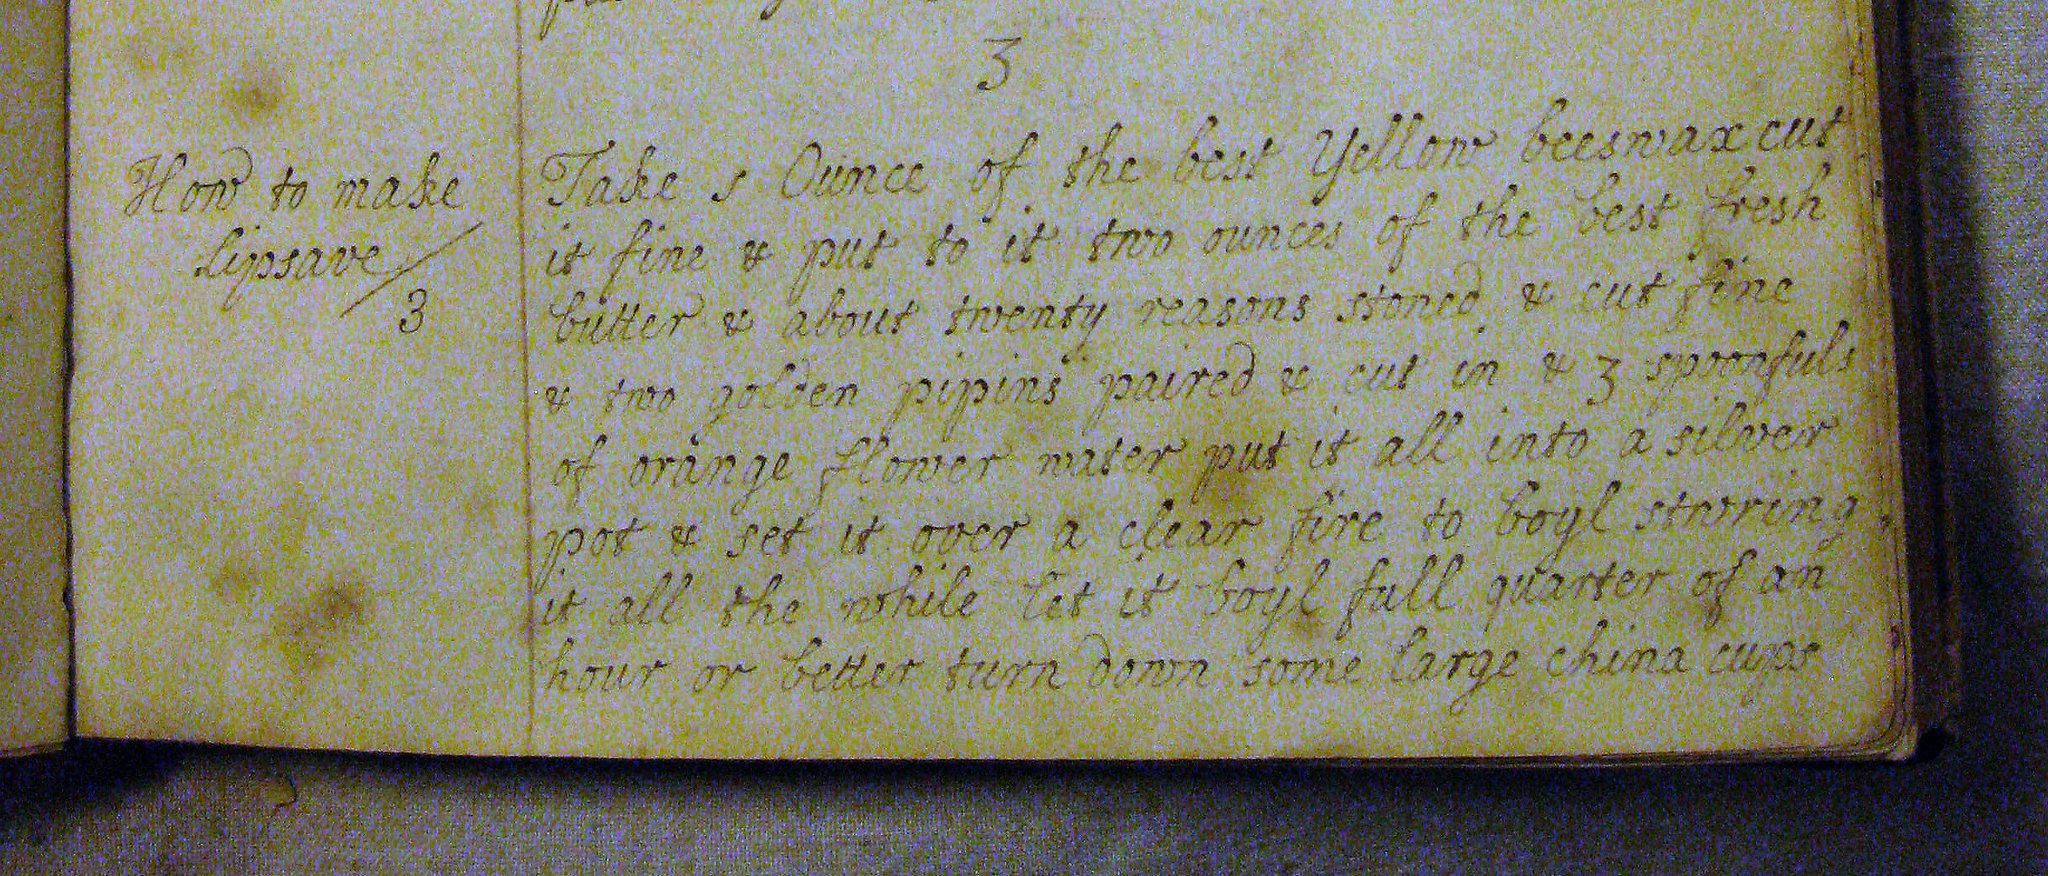 Testing remedy 'How to make Lipsave [lip salve]' from Mary Wise's 18thC recipe book #recipesconf #histmed https://t.co/24LdNx0tz8